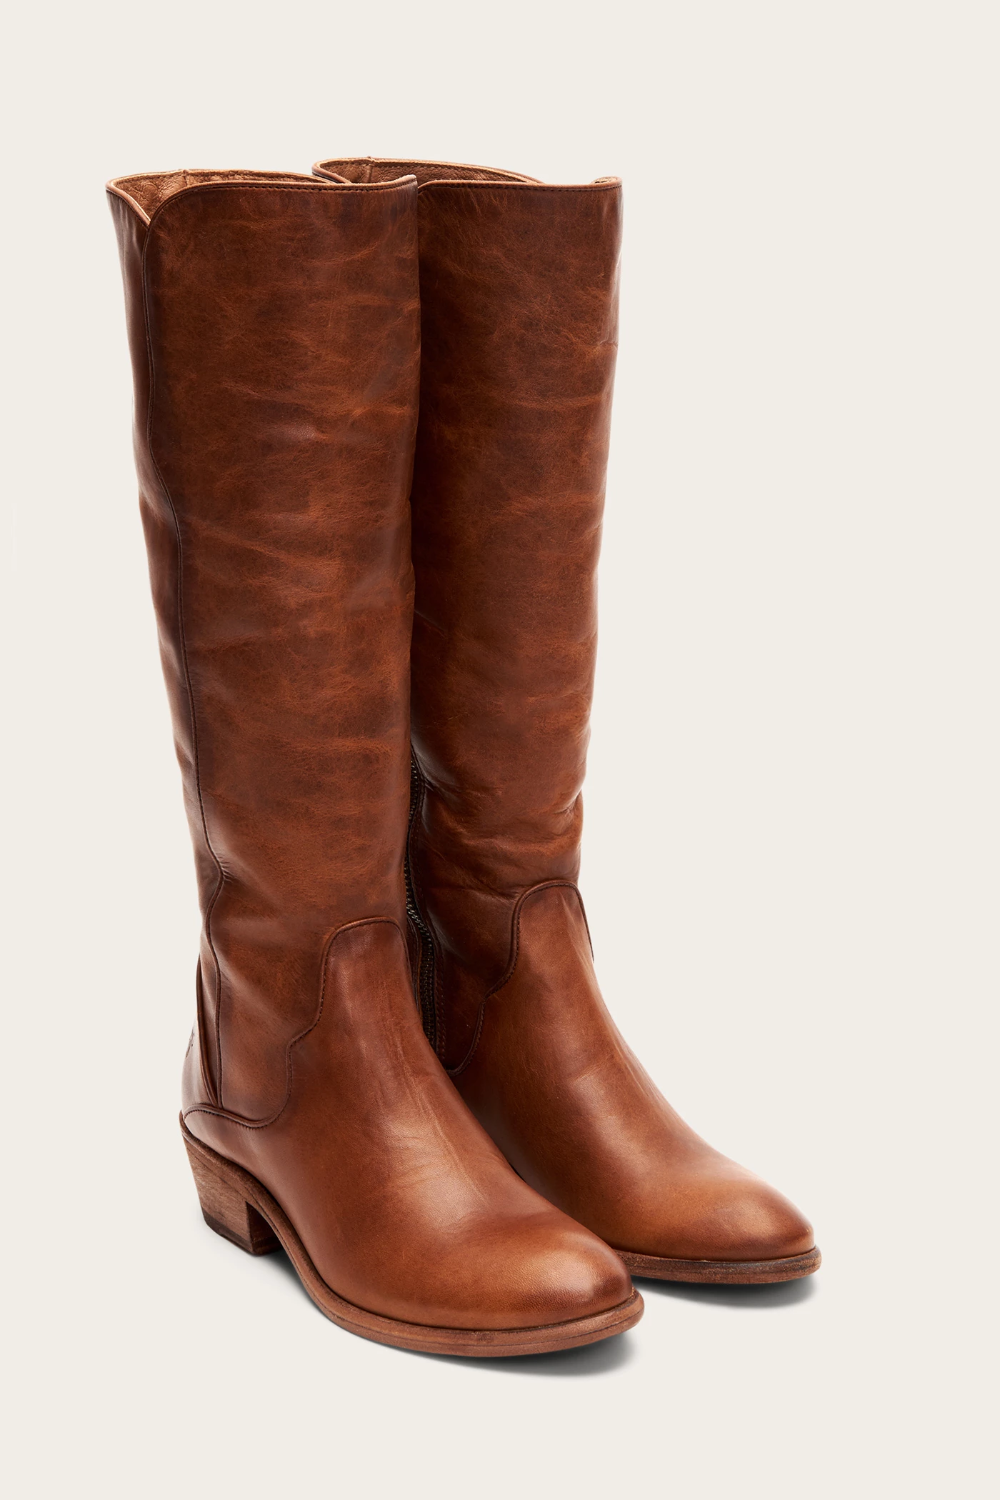 26+ Brown wide calf boots ideas ideas in 2021